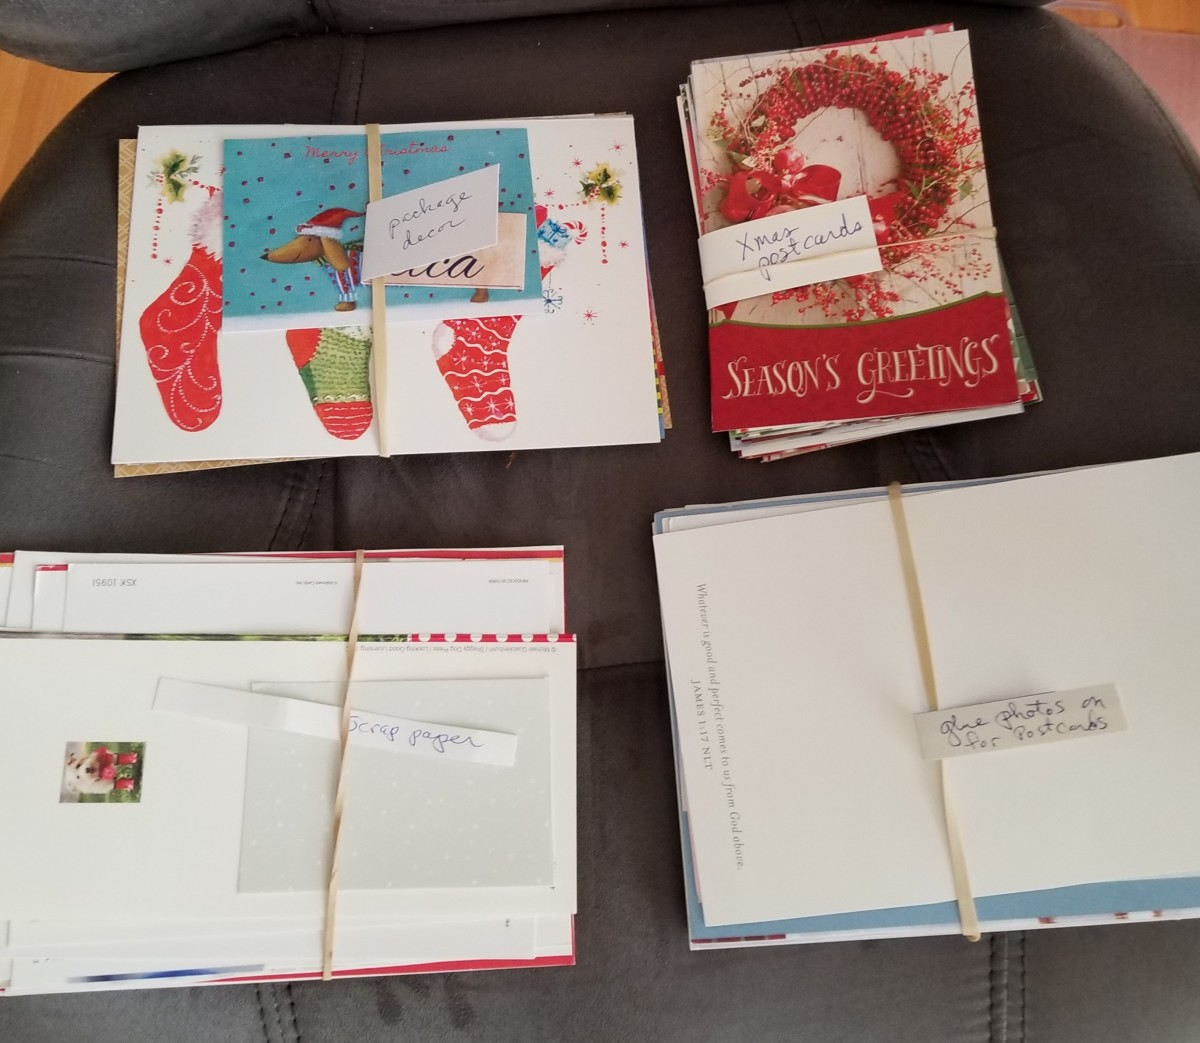 I save the ones with plain backs and glue my own photos on the side where the verse and signature is. The plain back becomes the part of a postcard where you write the address and message. PRESTO! Customized postcards to use throughout the year.